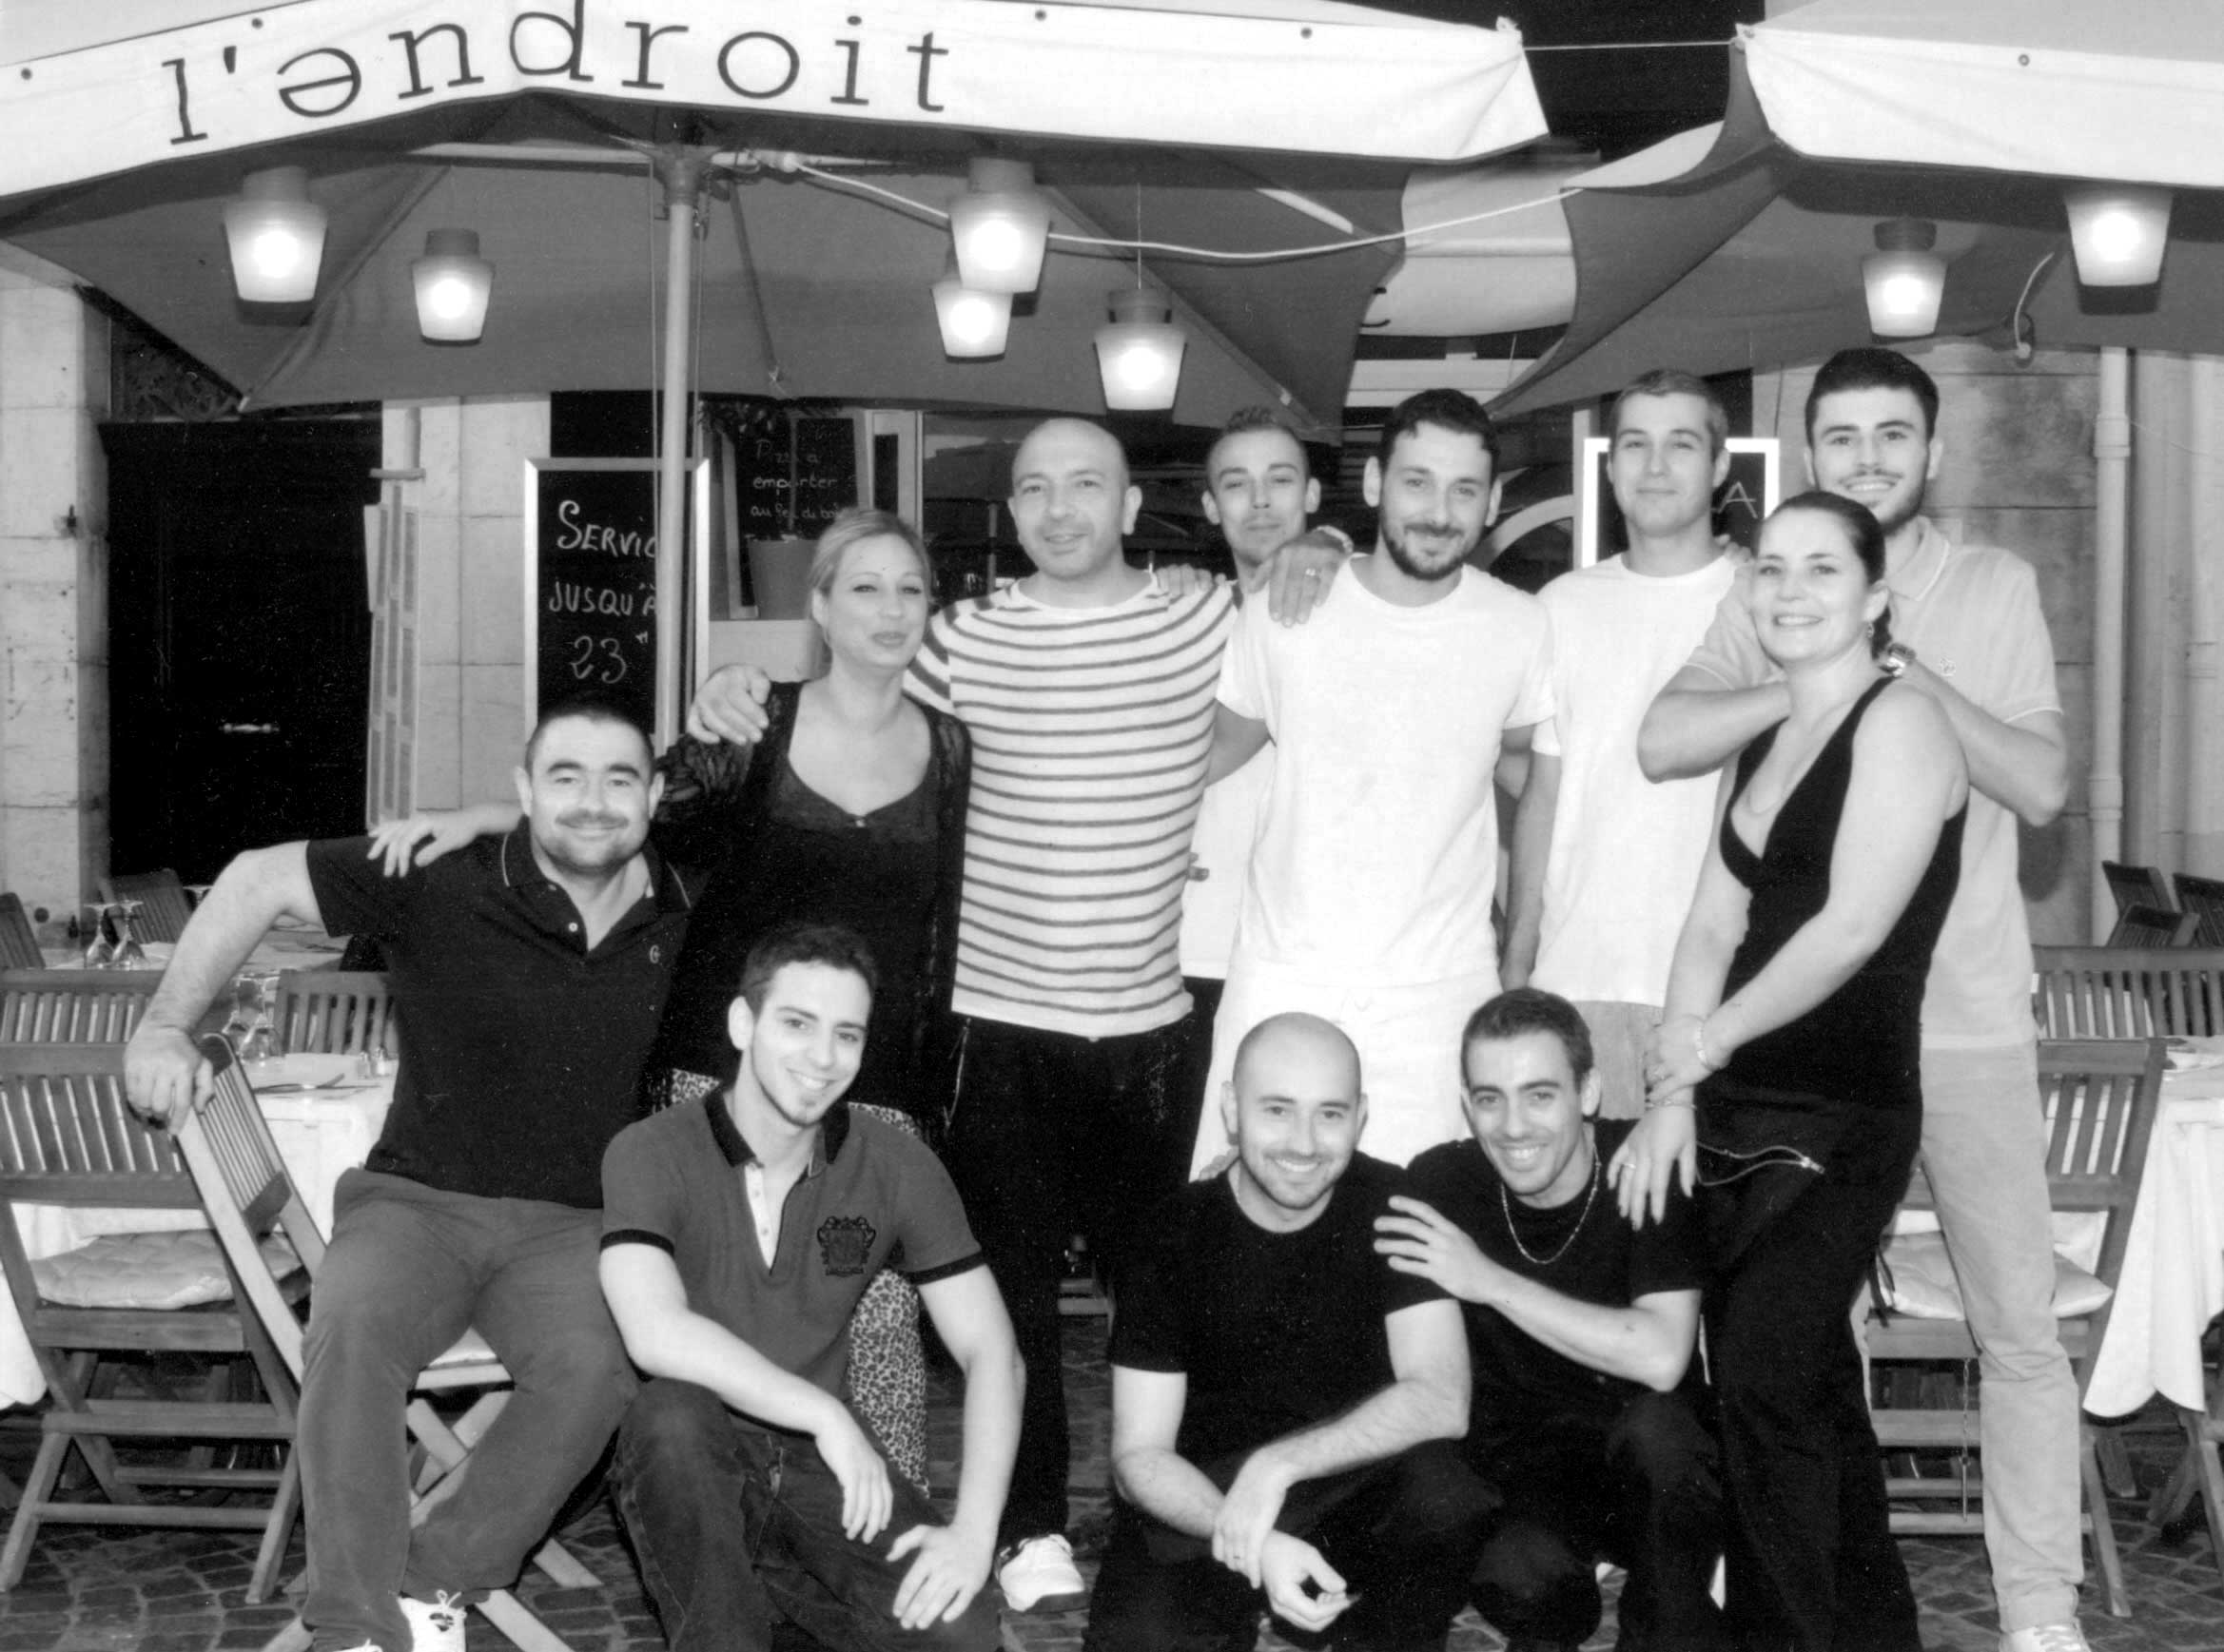 Endroit restaurant pizza sanary